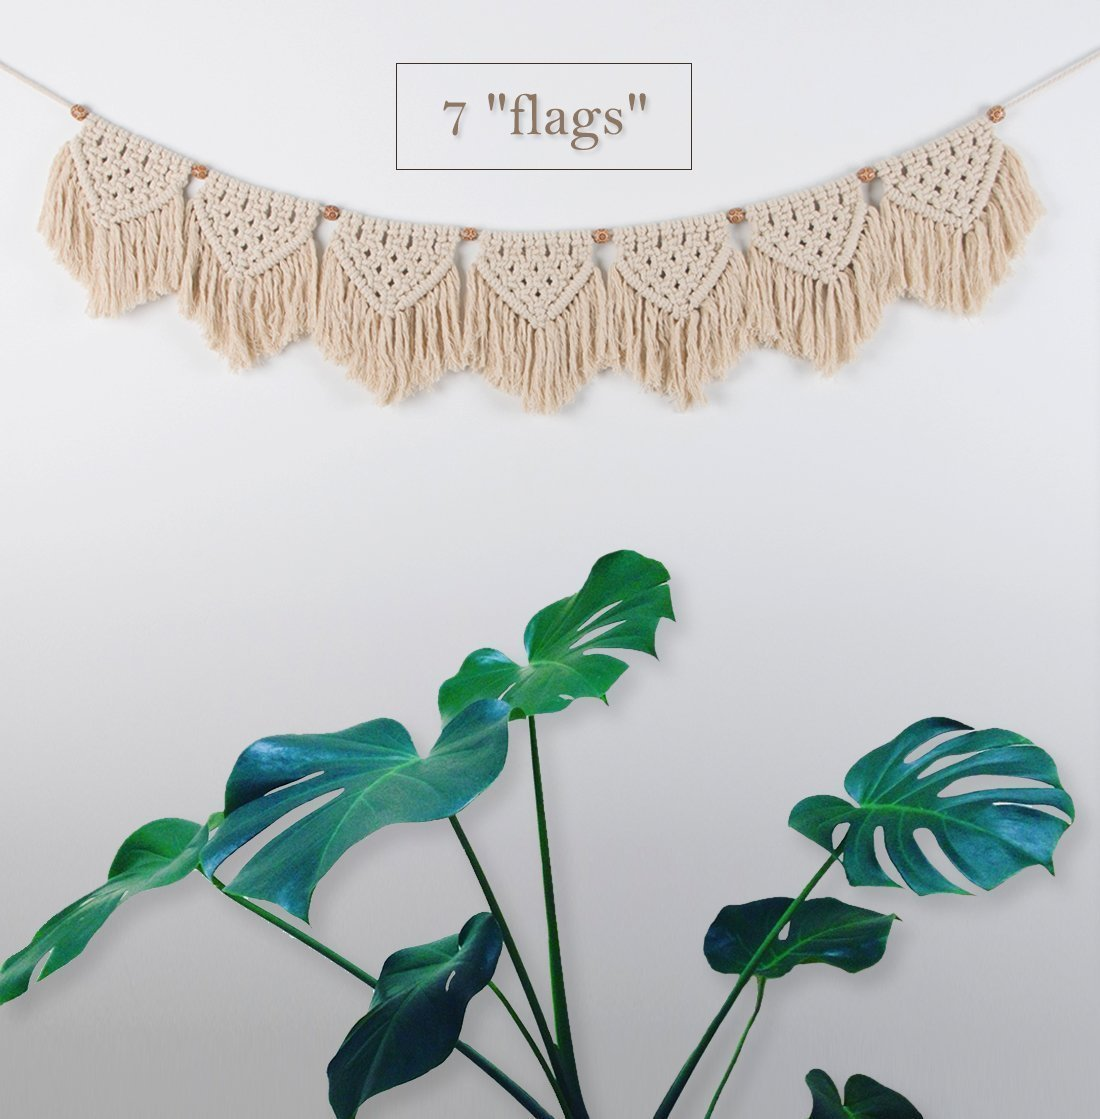 TIMEYARD Macrame Woven Wall Hanging Fringe Garland Banner - Boho Chic Bohemian Wall Decor - Apartment Dorm Living Room Bedroom Decorative Wall Art, 9'' W x45 L, 7'' Flags by TIMEYARD